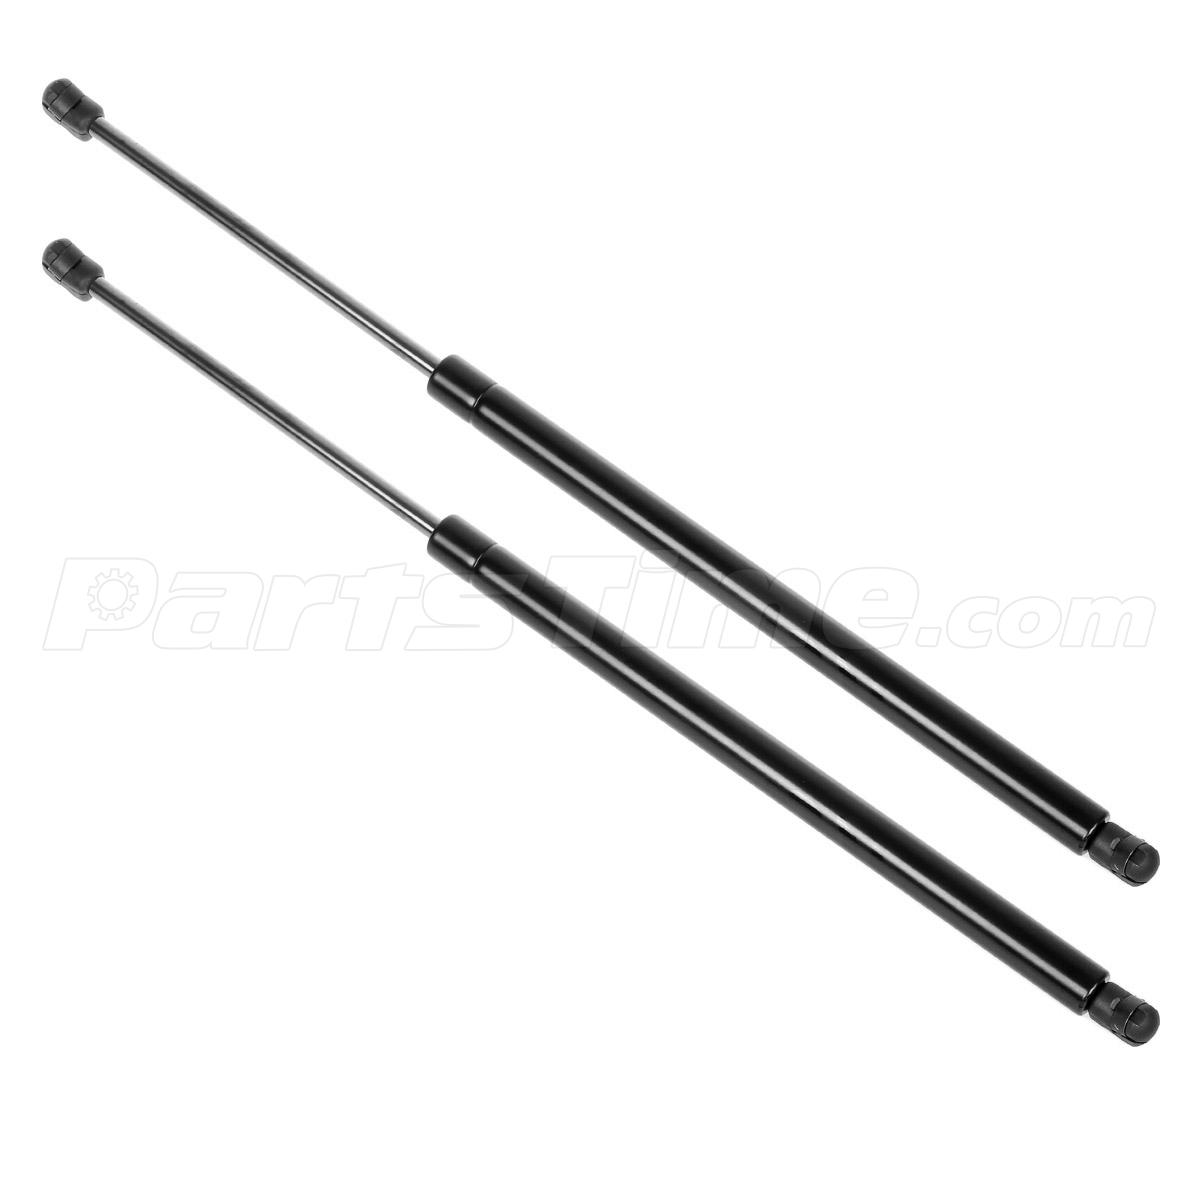 2 Rear Liftgate Hatch Gas Charged Lift Support For